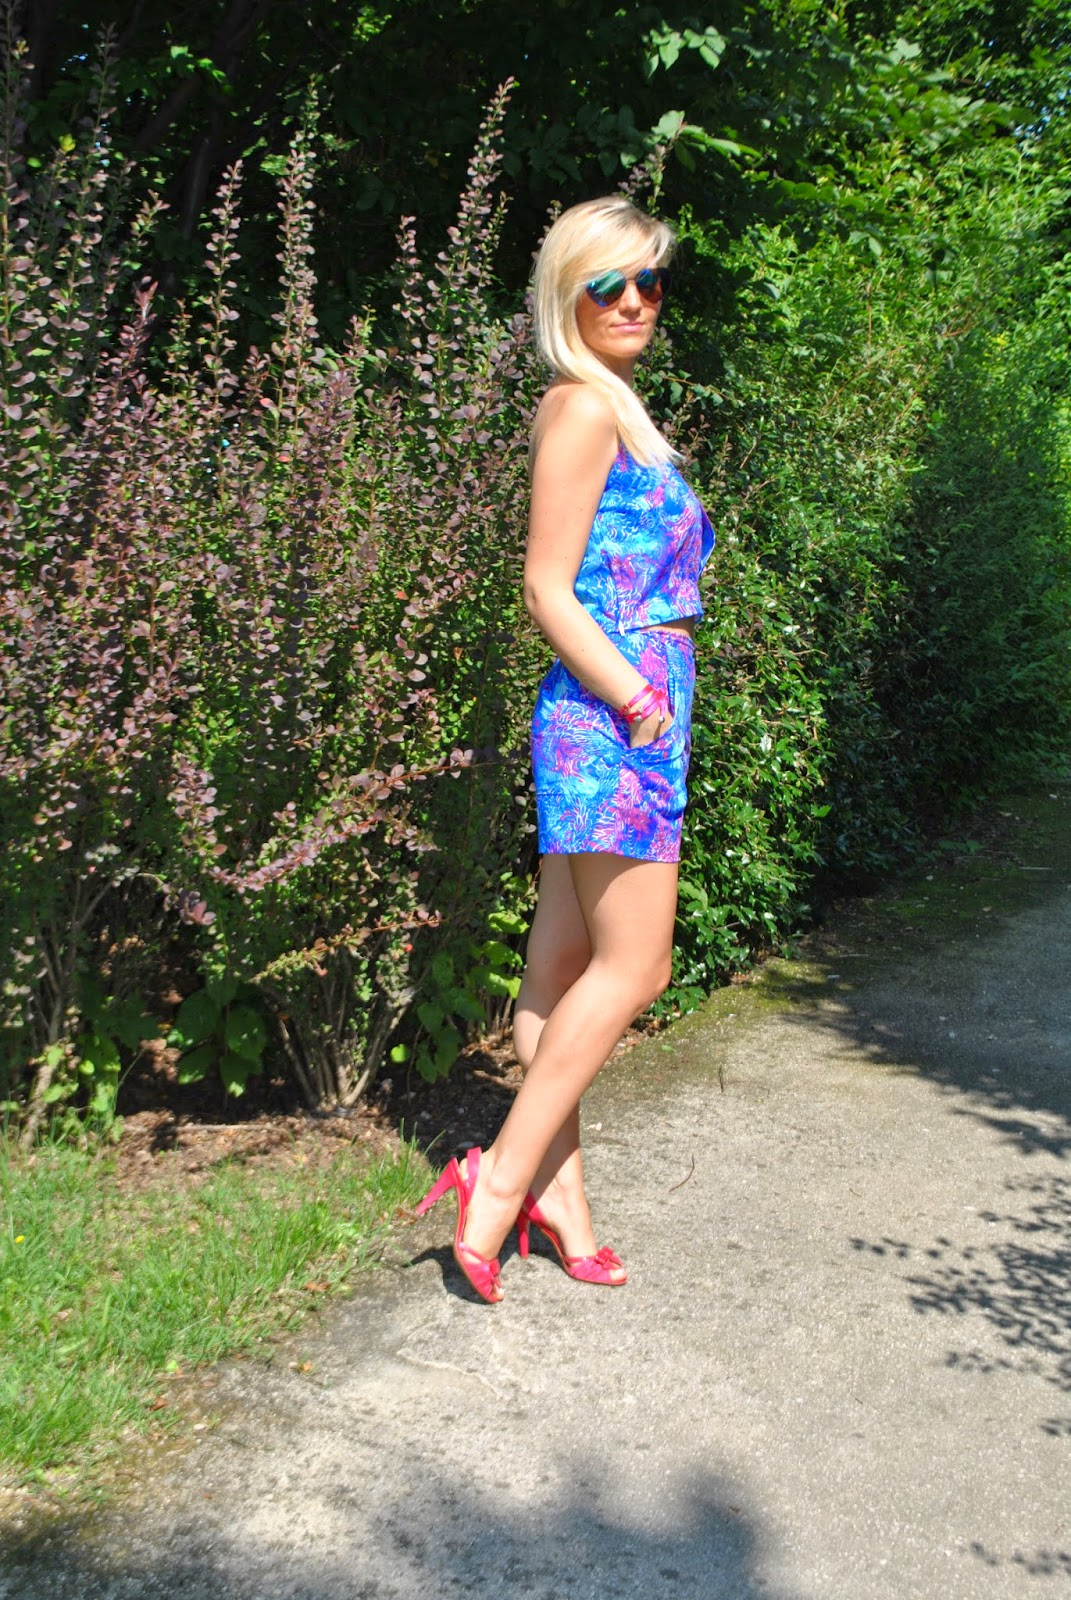 outfit two pieces floral print outfit shorts a fiori e top a fiori outfit scarpe fucsia abbinamenti scarpe fucsia come abbinare le scarpe fucsia bracciale modi e mode outfit luglio 2014 outfit estate 2014 outfit estivi outfit mariafelicia magno fashion blogger di colorblock by felym outfit fashion blogger bionde fashion blogger italiane fashion blogger milano